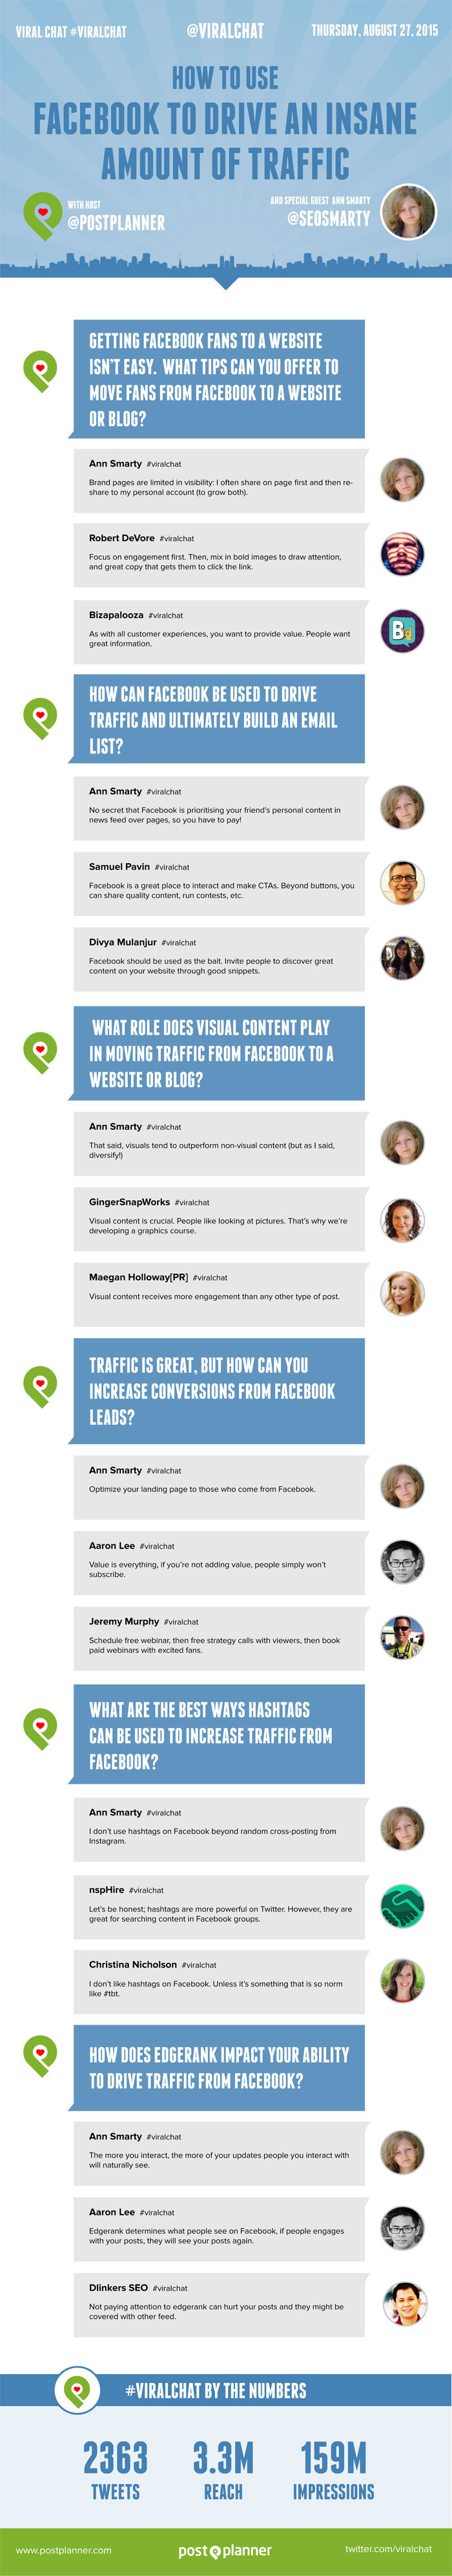 how-to-use-facebook-to-drive-traffic-infographic